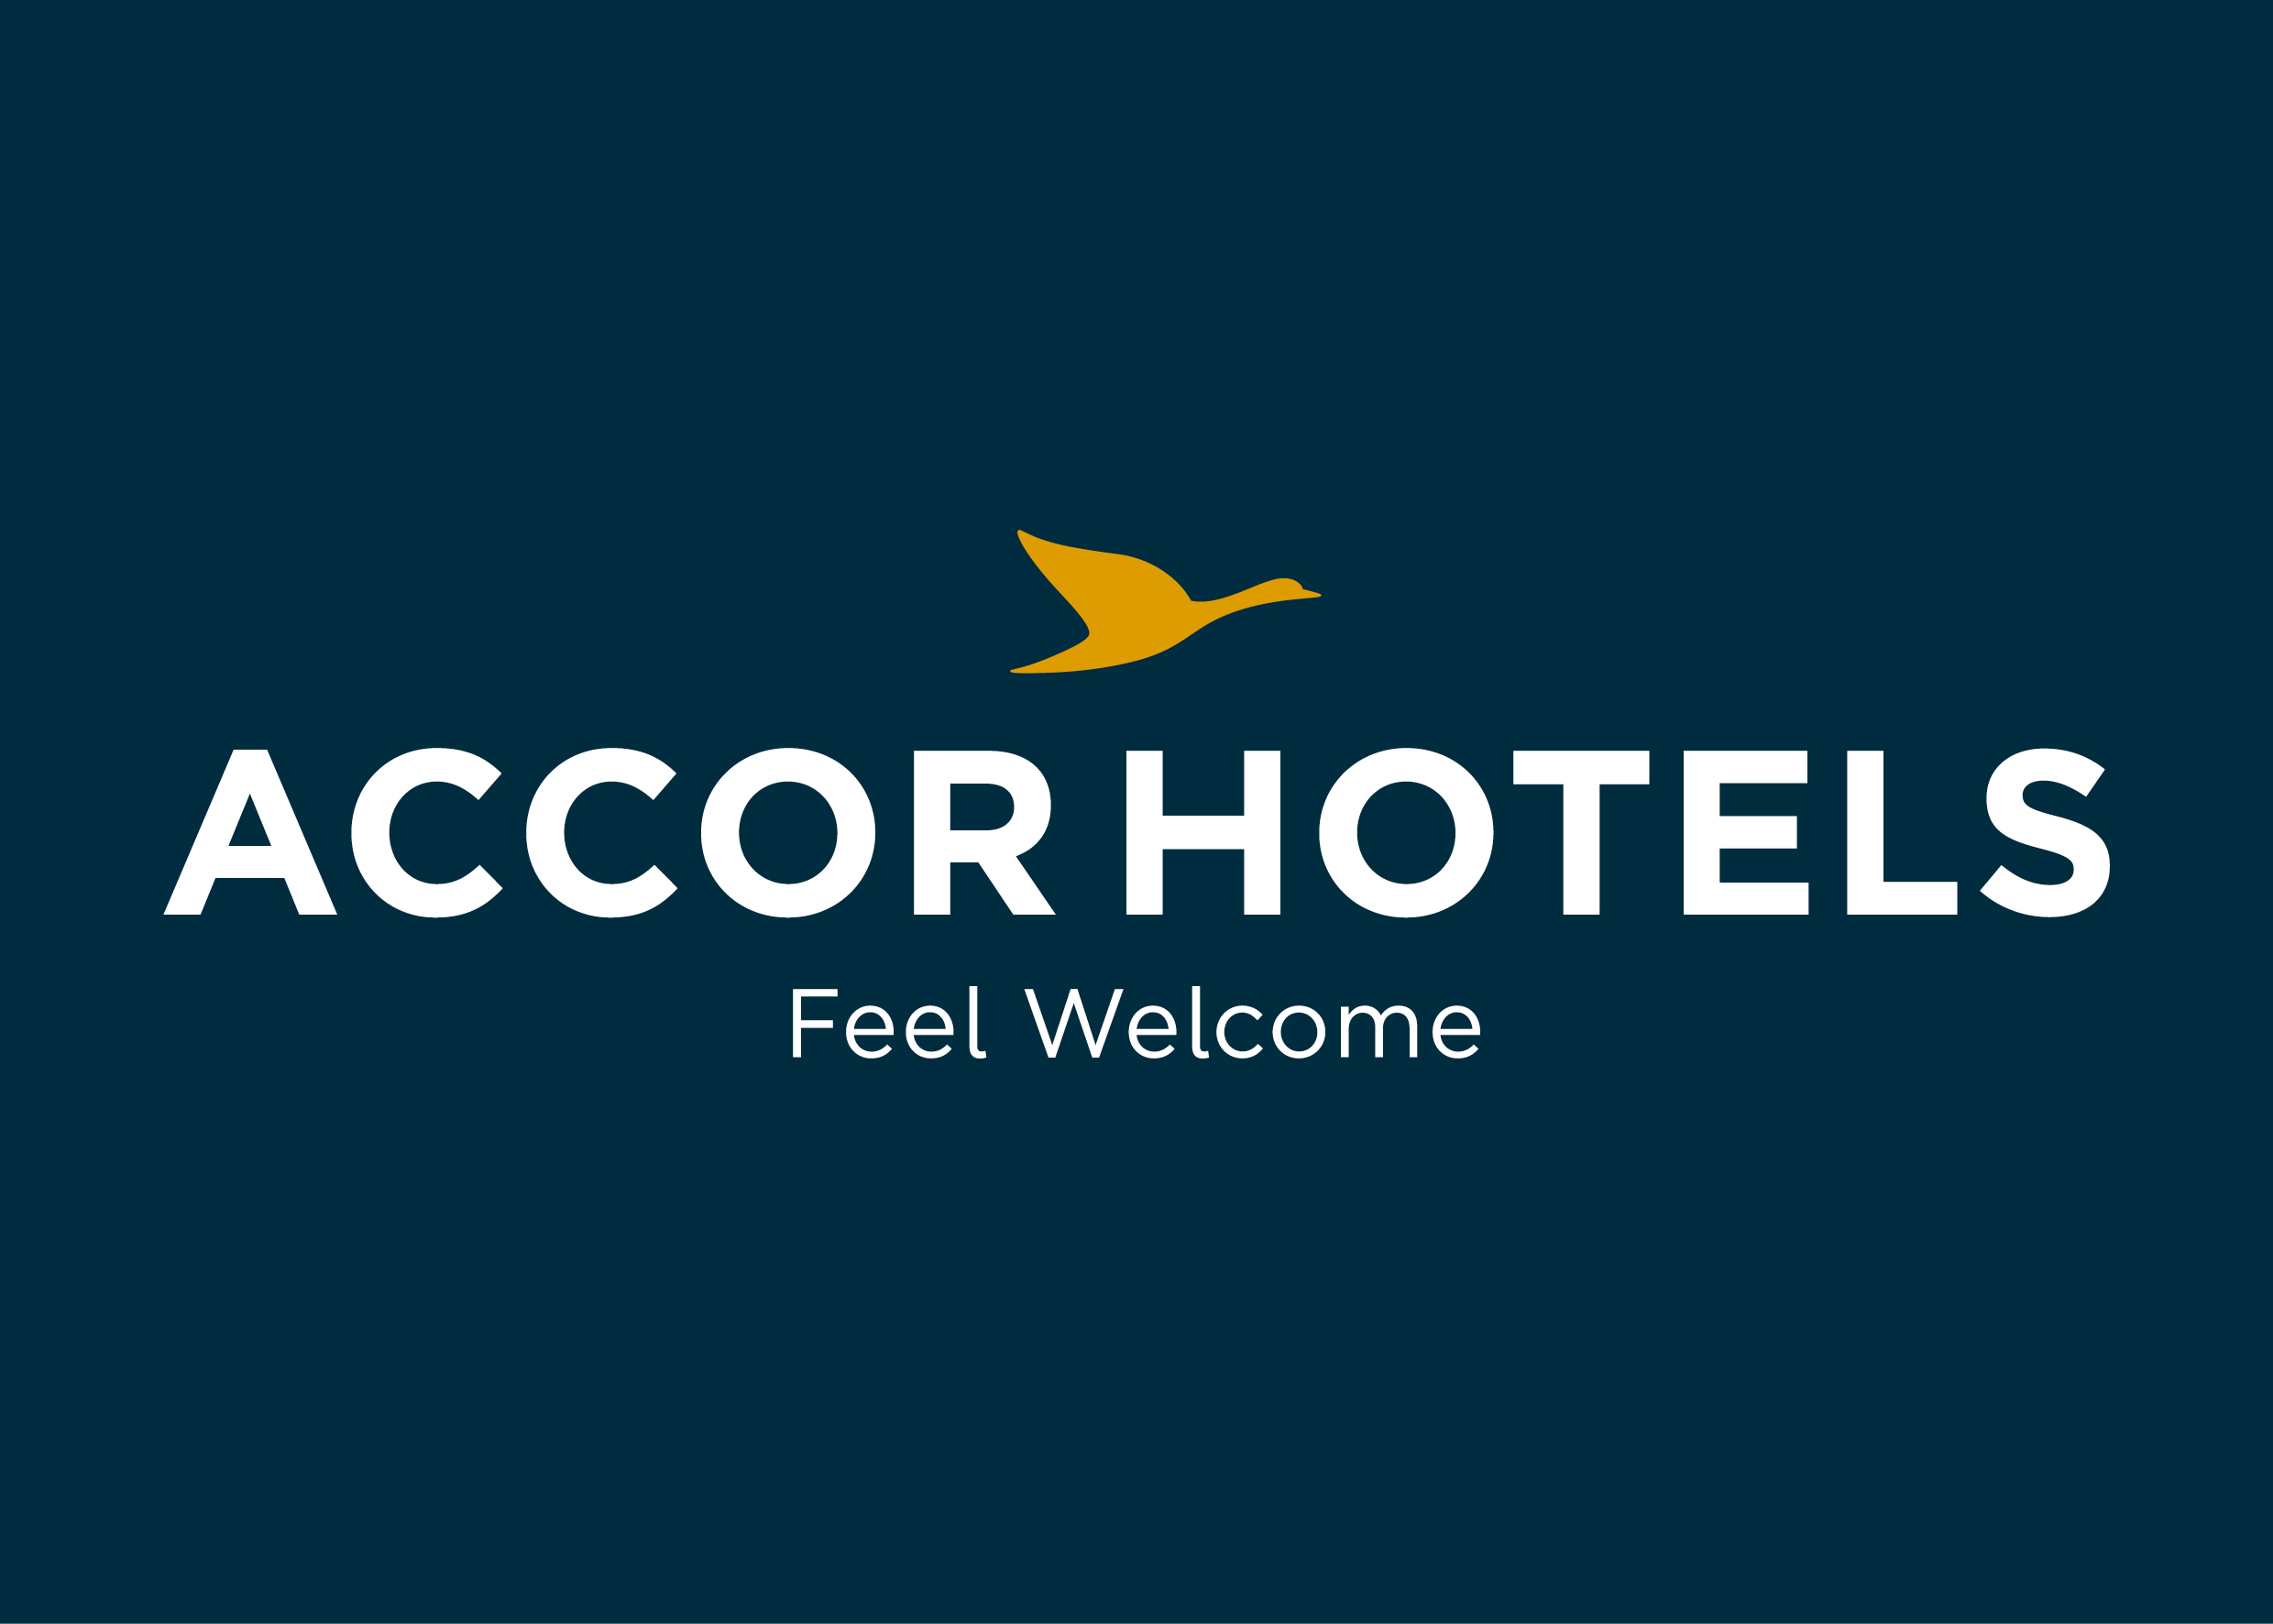 Singapore Wallpaper Hd Nicolas Sarkozy S Next Act To Be With Accorhotels Hotel